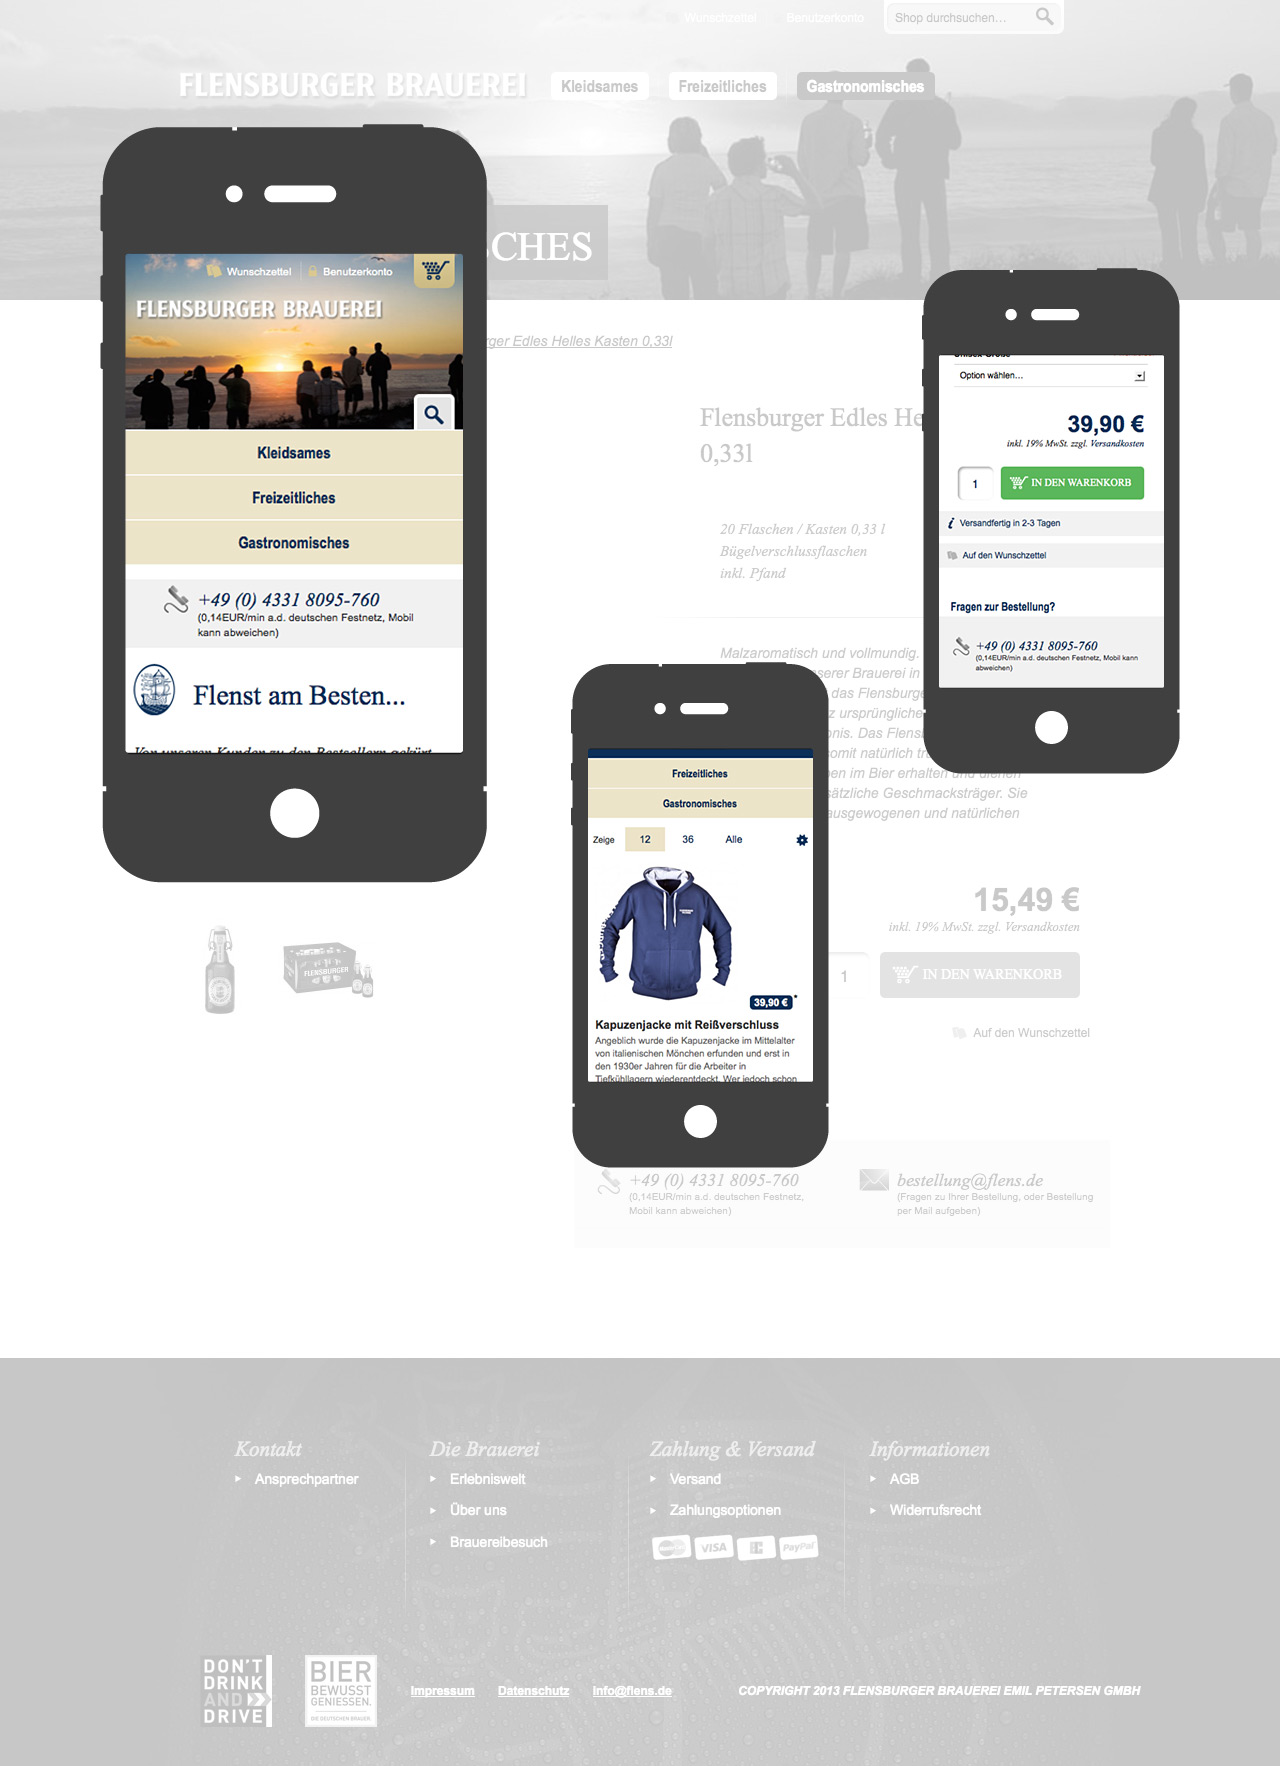 Flensburger Brauerei - Responsives Layout am Smartphone